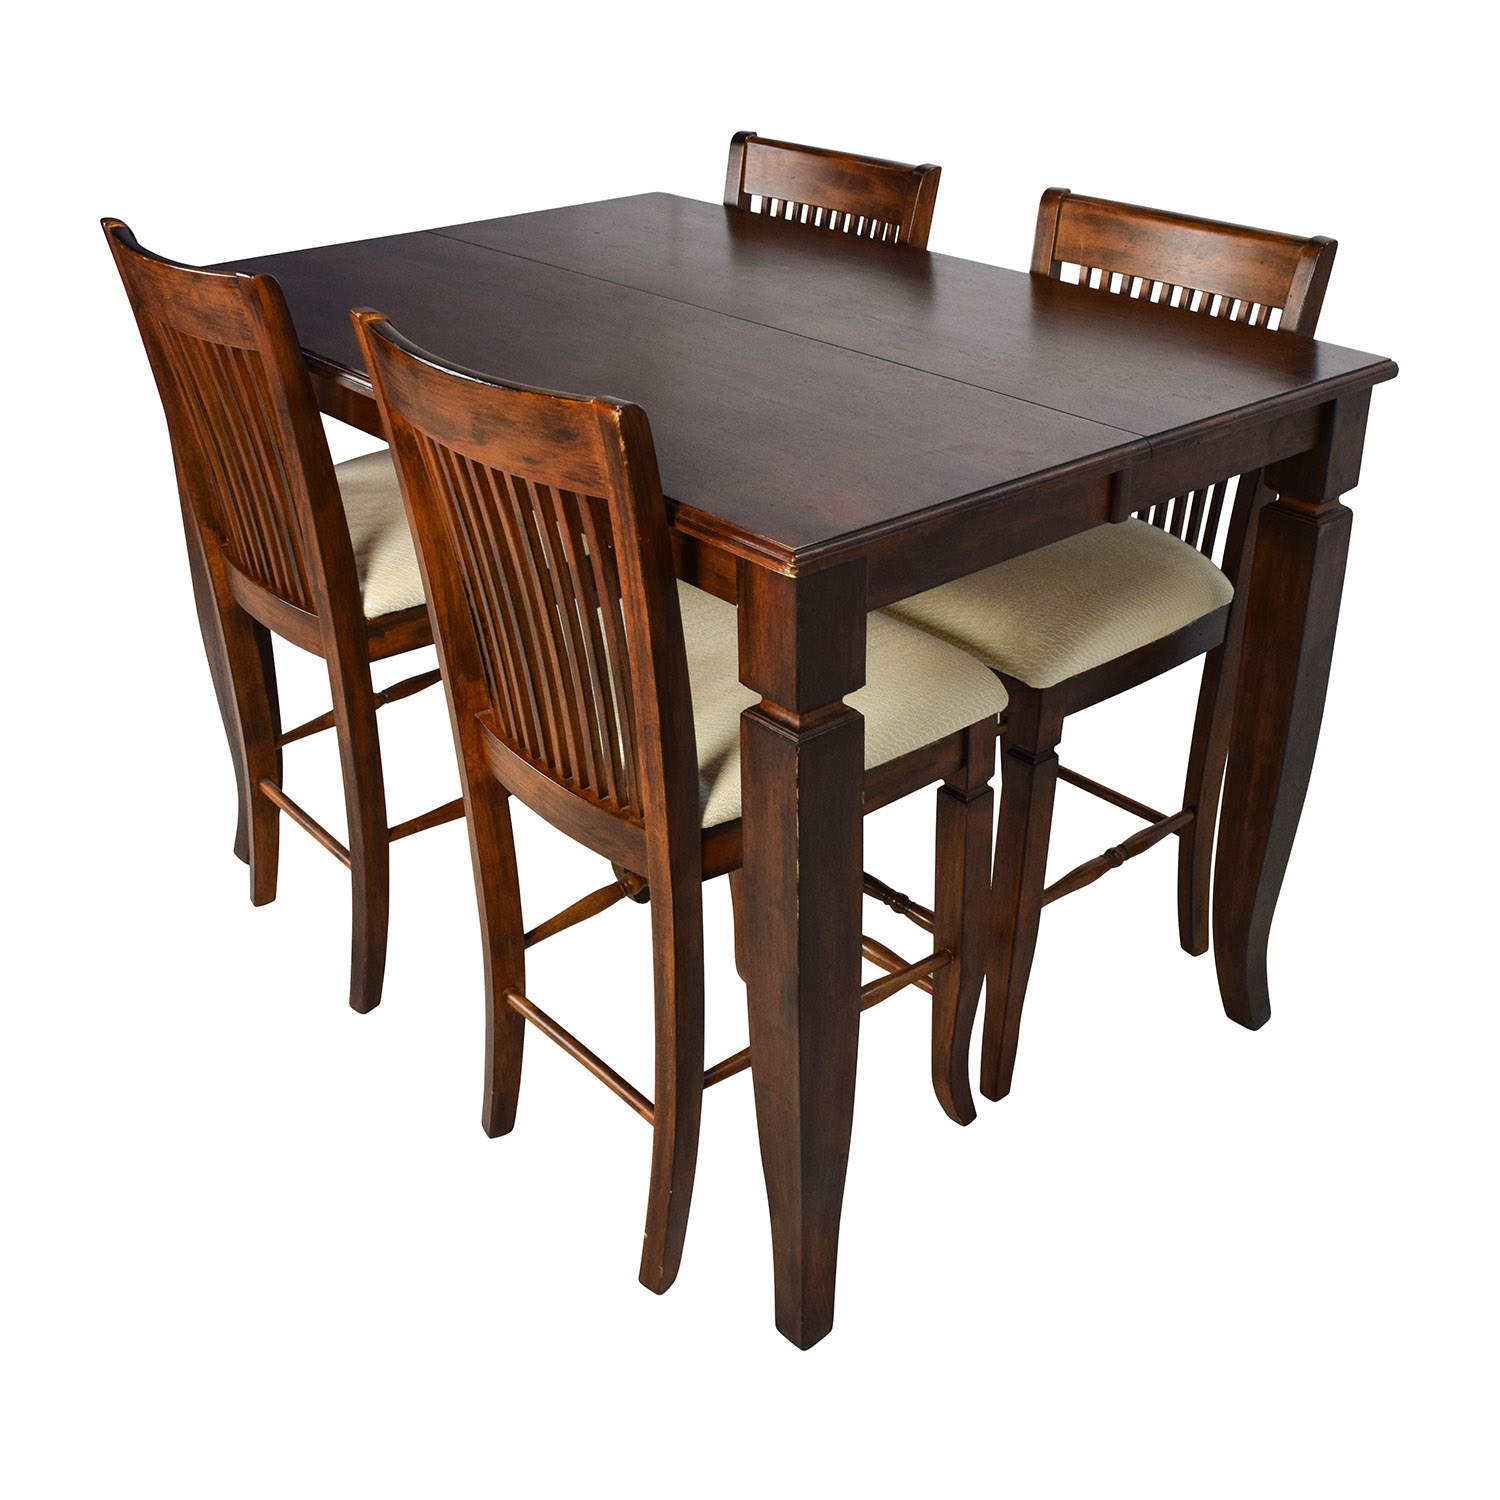 Contemporary formal dining set dining room set for sale for Dining room tables for sale